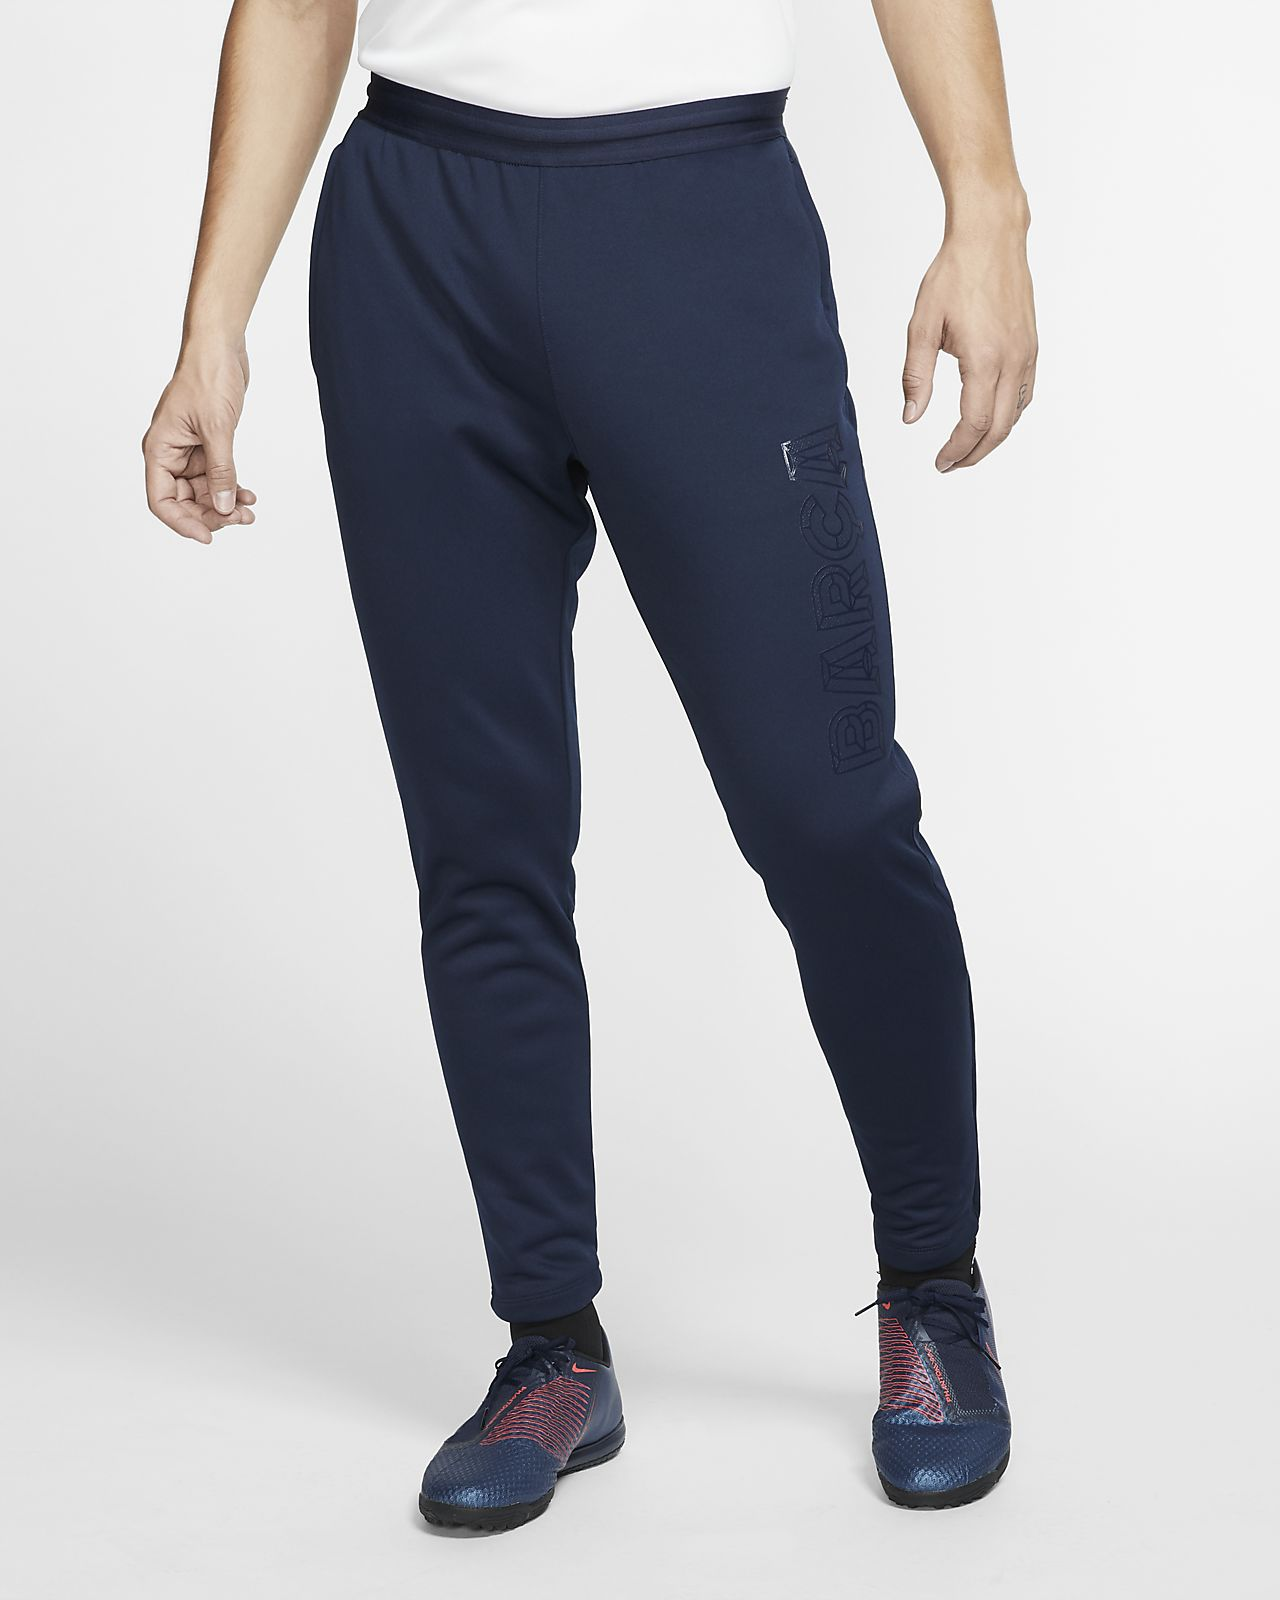 942aa4794 FC Barcelona Men's Football Pants. Nike.com CA